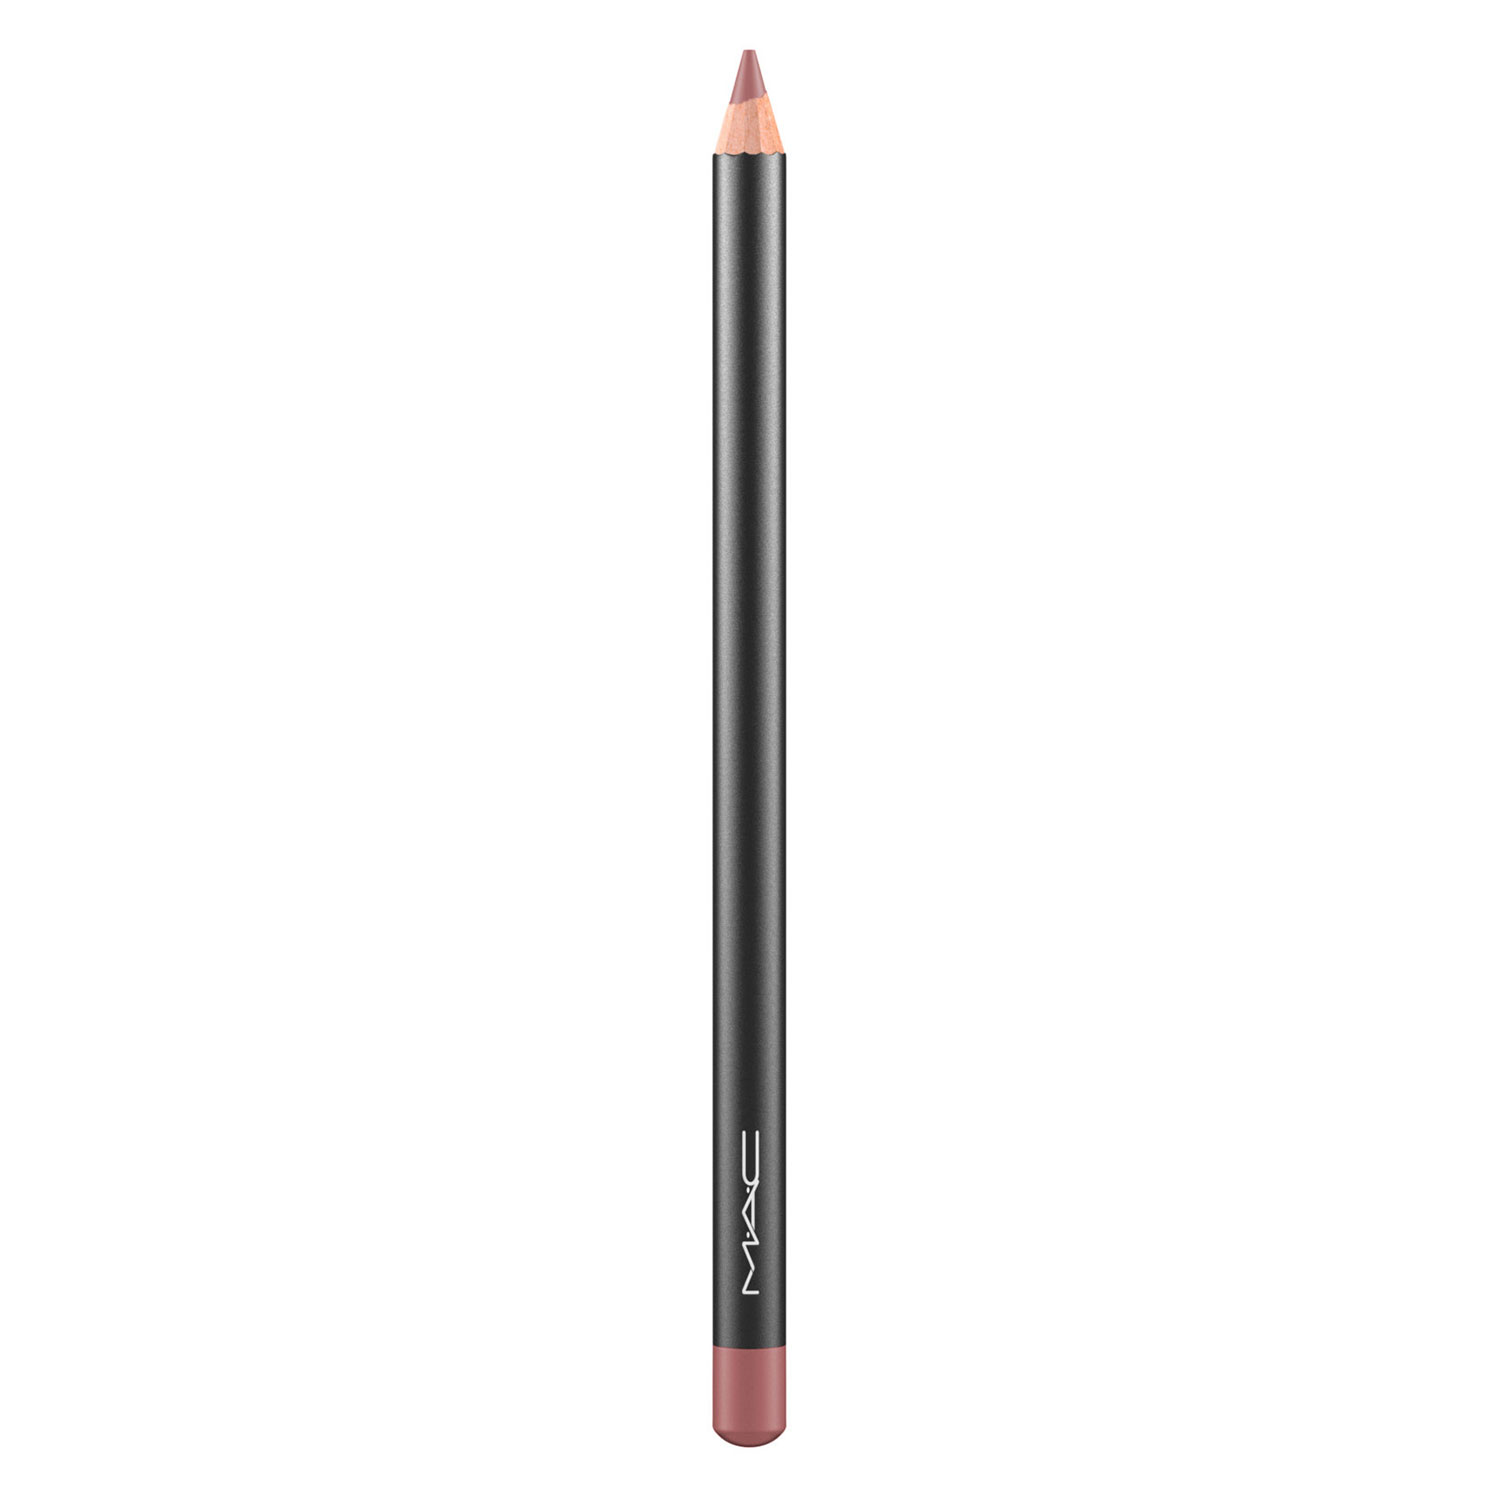 Lip Pencil - Whirl - 1.4g